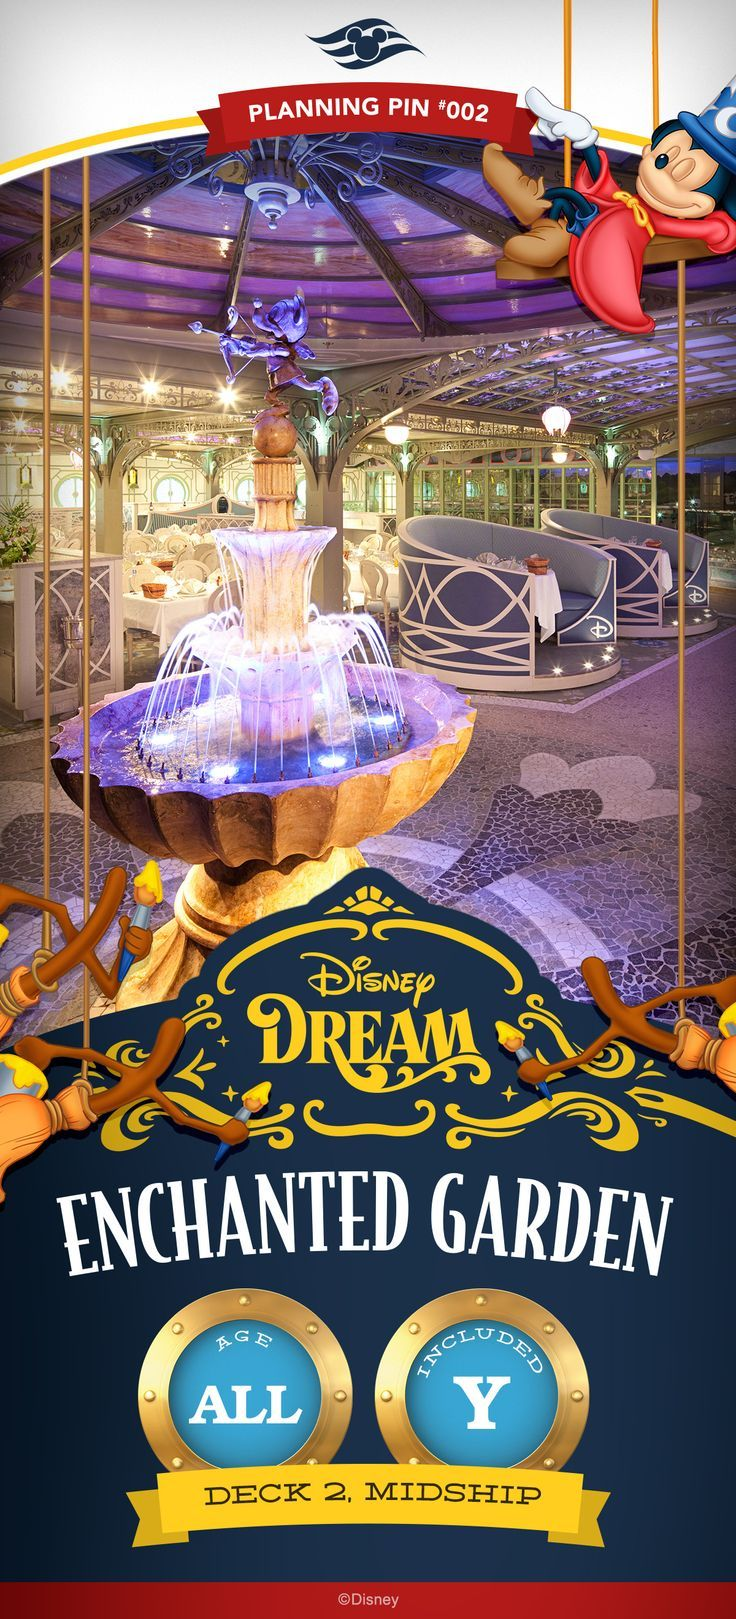 Best 25 disney cruise specials ideas only on pinterest disney disney cruise line planning pins disney dream enchanted garden more baanklon Gallery